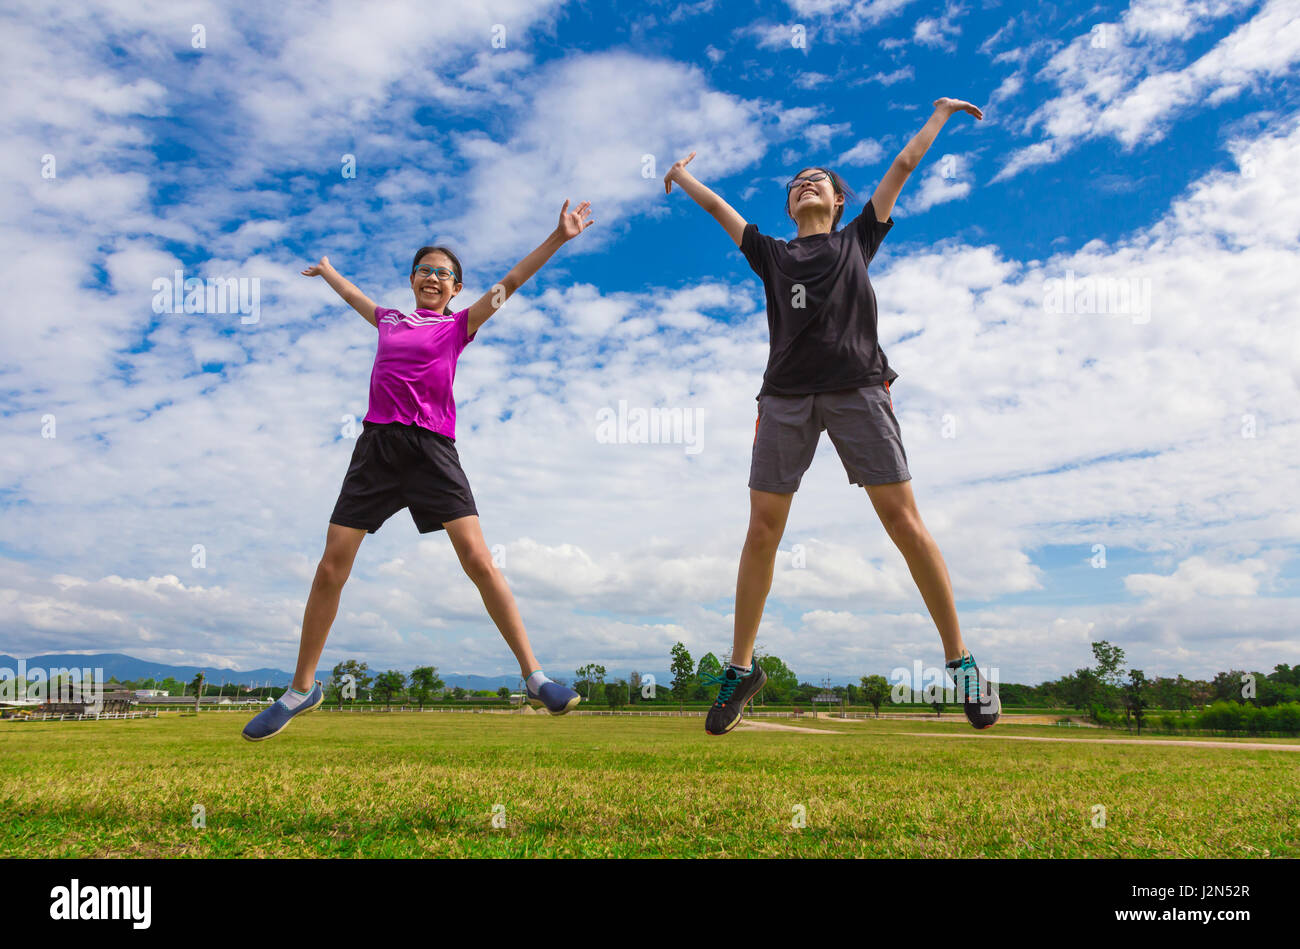 Two happy asian young teenagers jumping for joy in a grassy field on a bright sunny day with cloudy blue sky Stock Photo